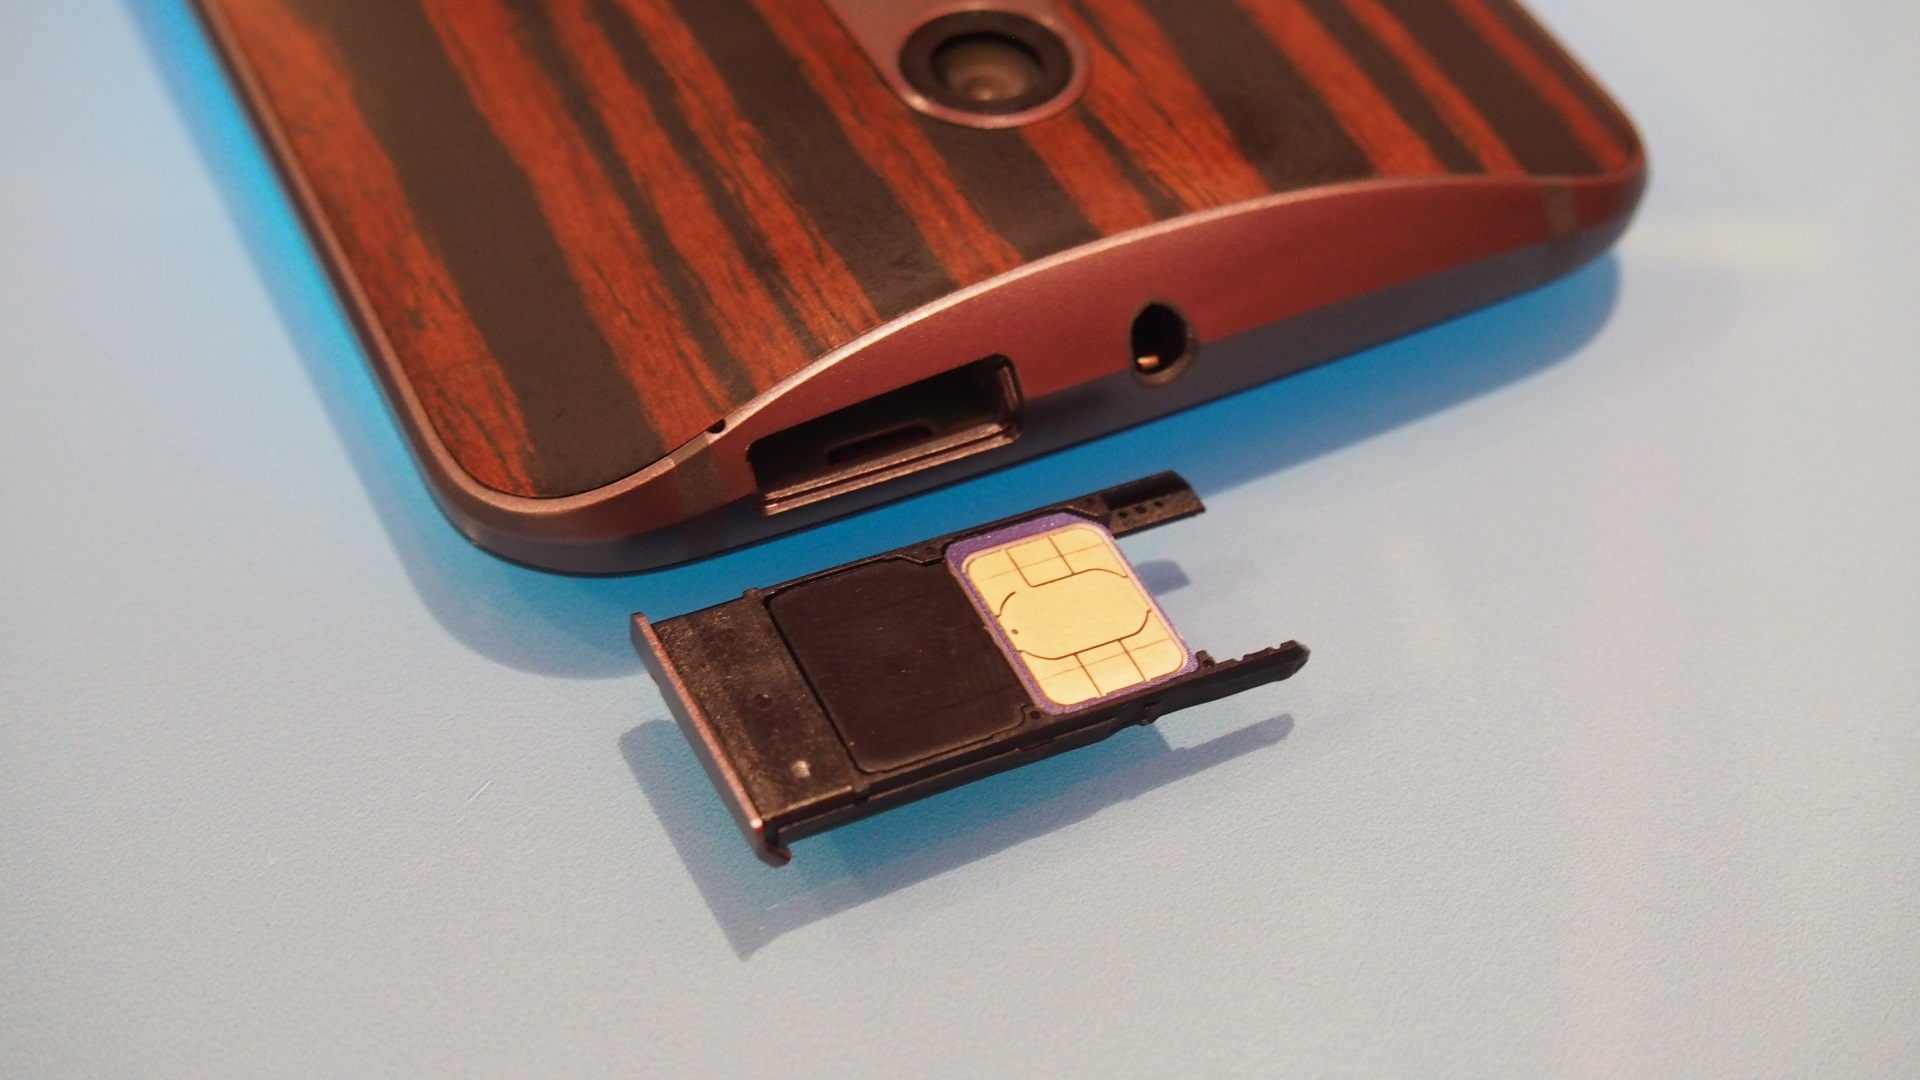 Moto x style sd card slot groupe casino france st etienne